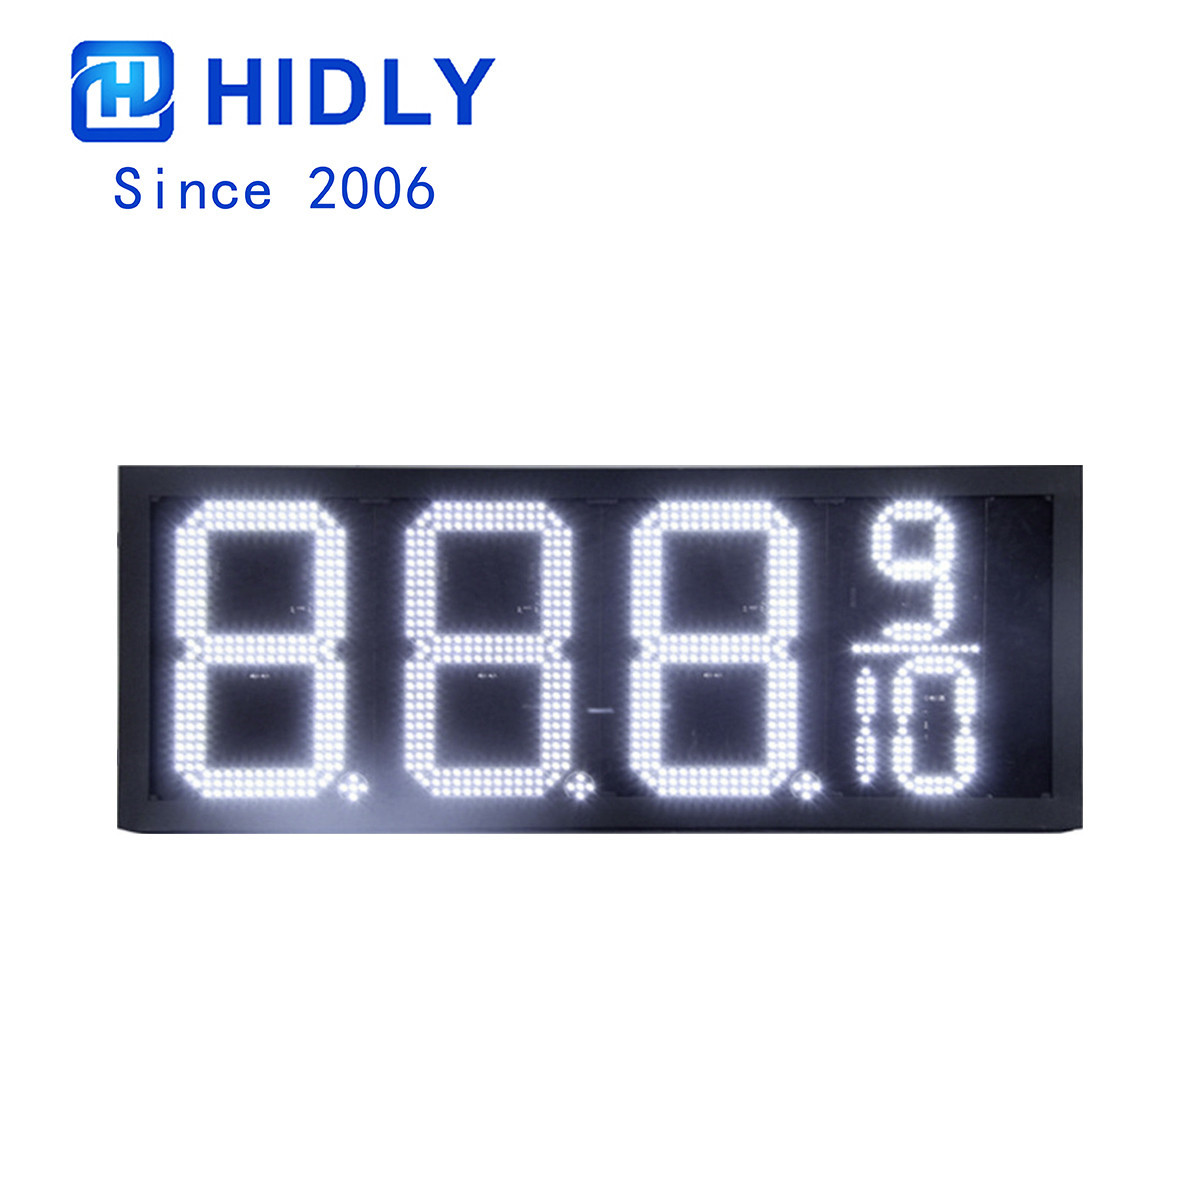 8 Inch White Super Bright Led Gas Price Display:GAS8Z8889W